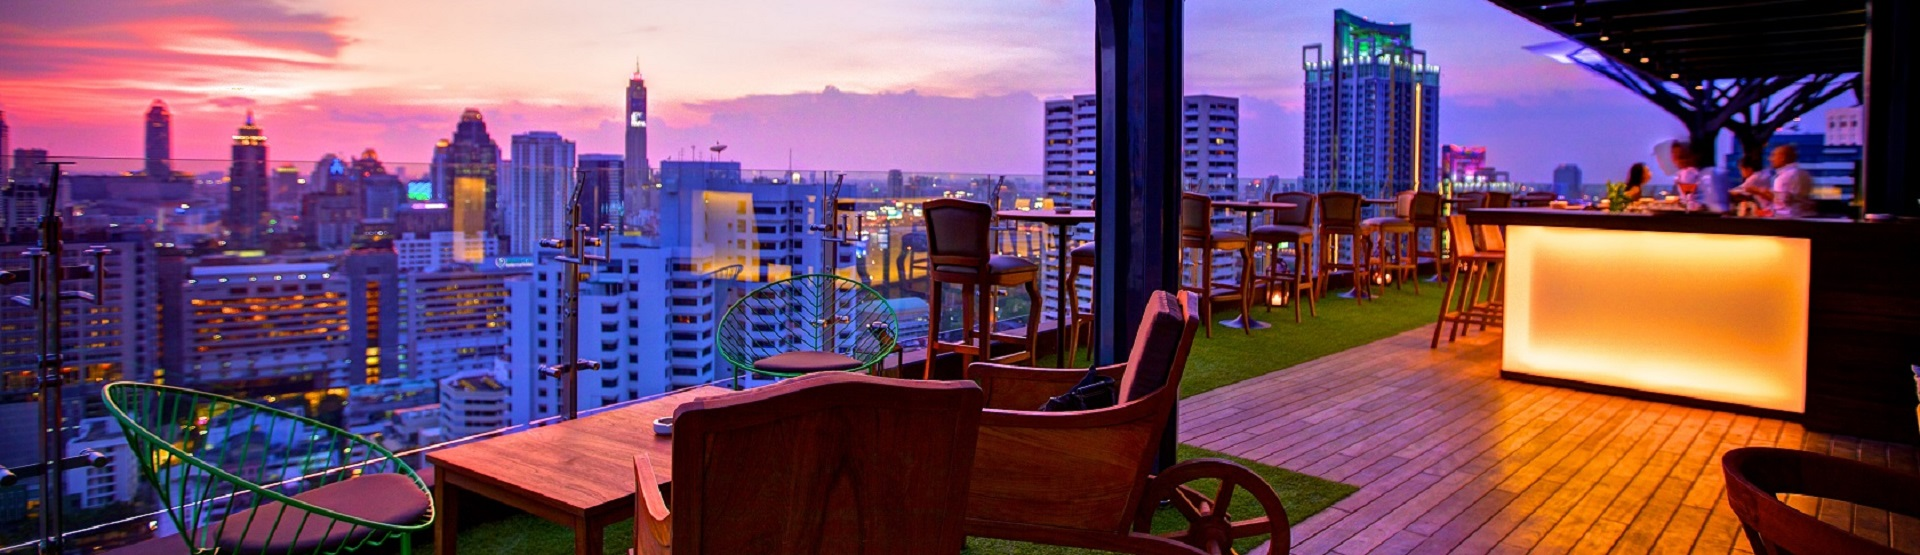 above-eleven-rooftop-bar-restaurant-hotel-architecture-bangkok-hotel-design-sohohospitality